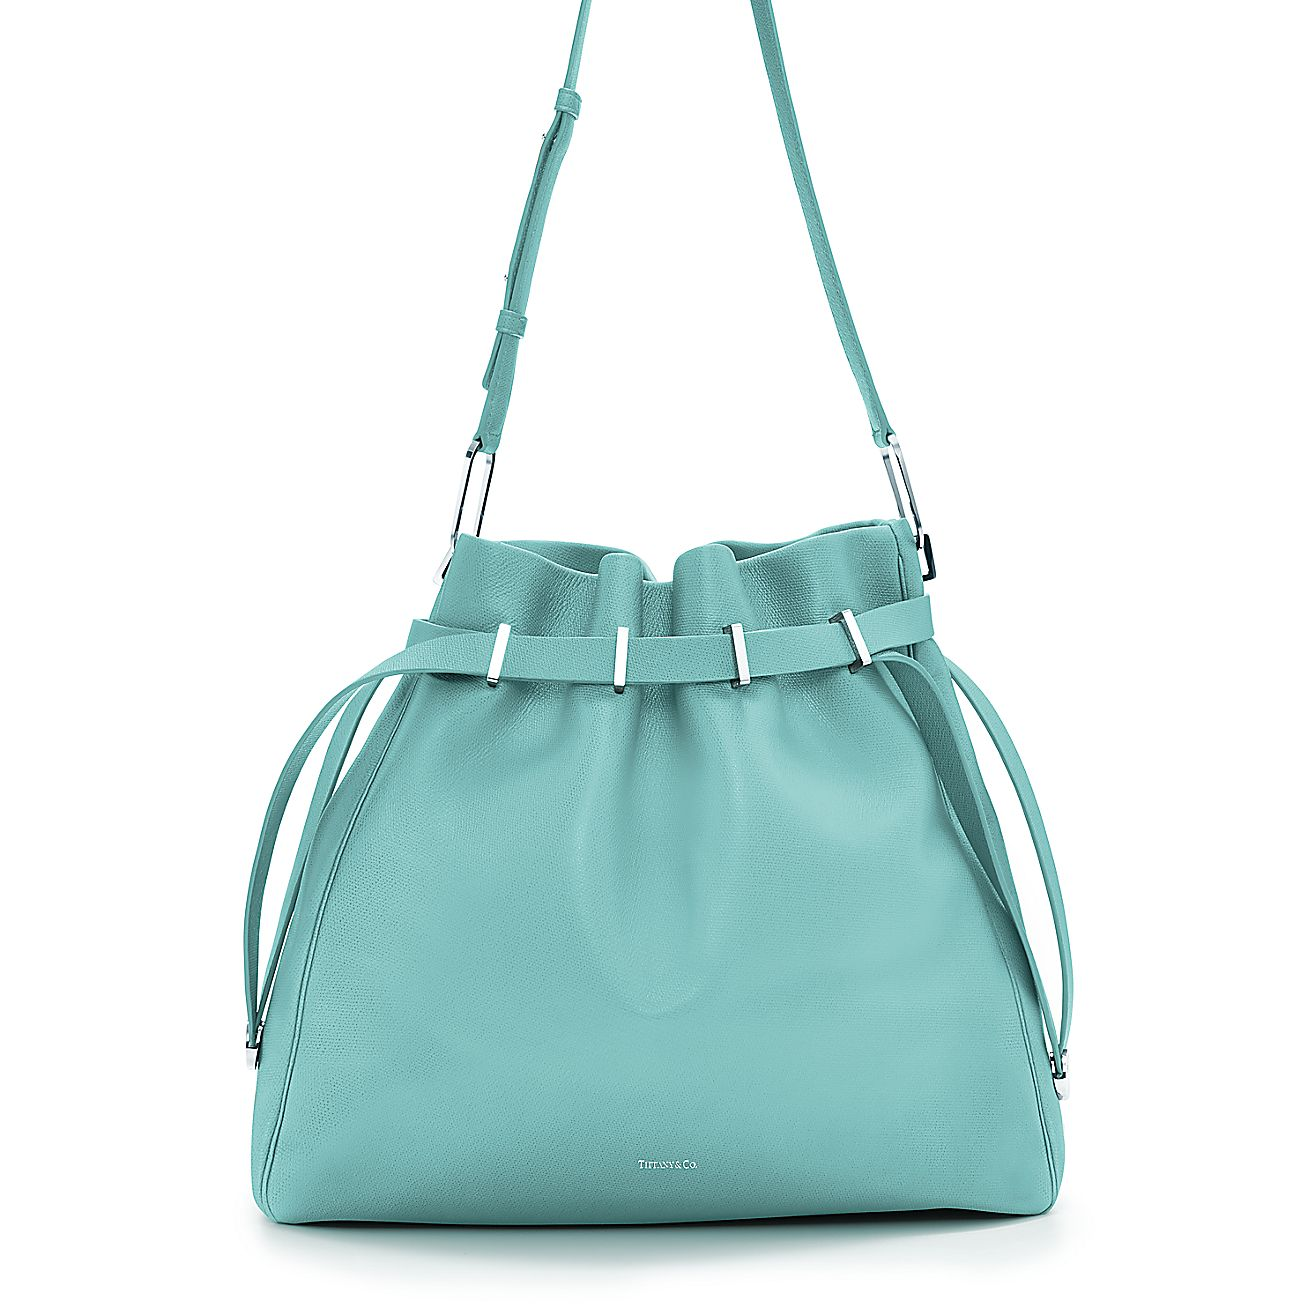 Blair Shoulder Bag In Light Teal Textured Leather More Colors Available